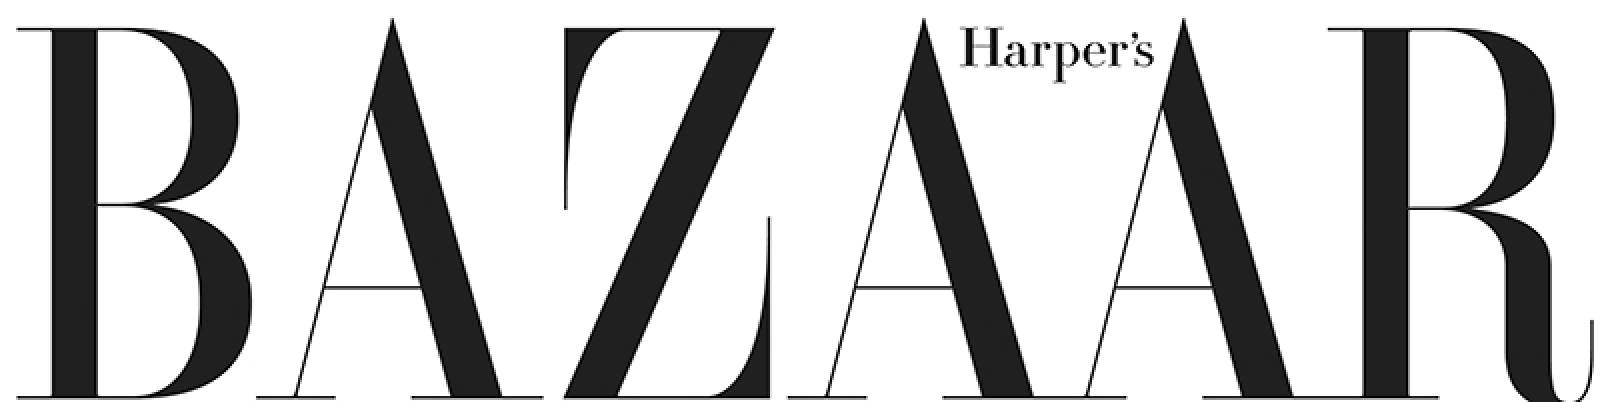 Harpers-Bazaar-Logo,medium_large.2x.1518822465